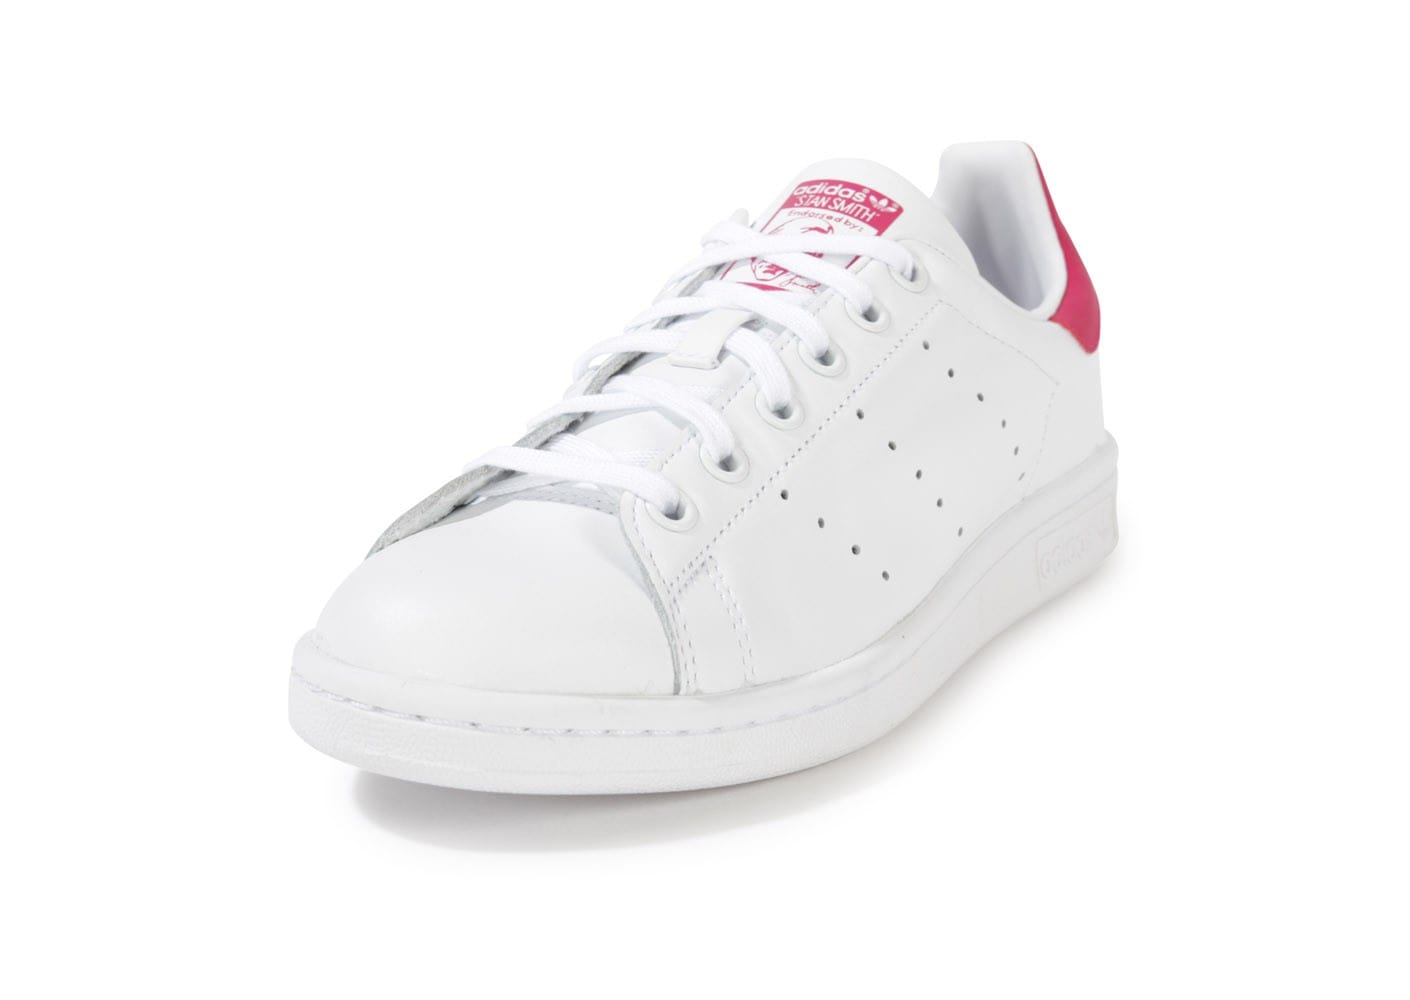 63ff9dce6585 adidas Stan Smith blanche et rose - Chaussures adidas - Chausport